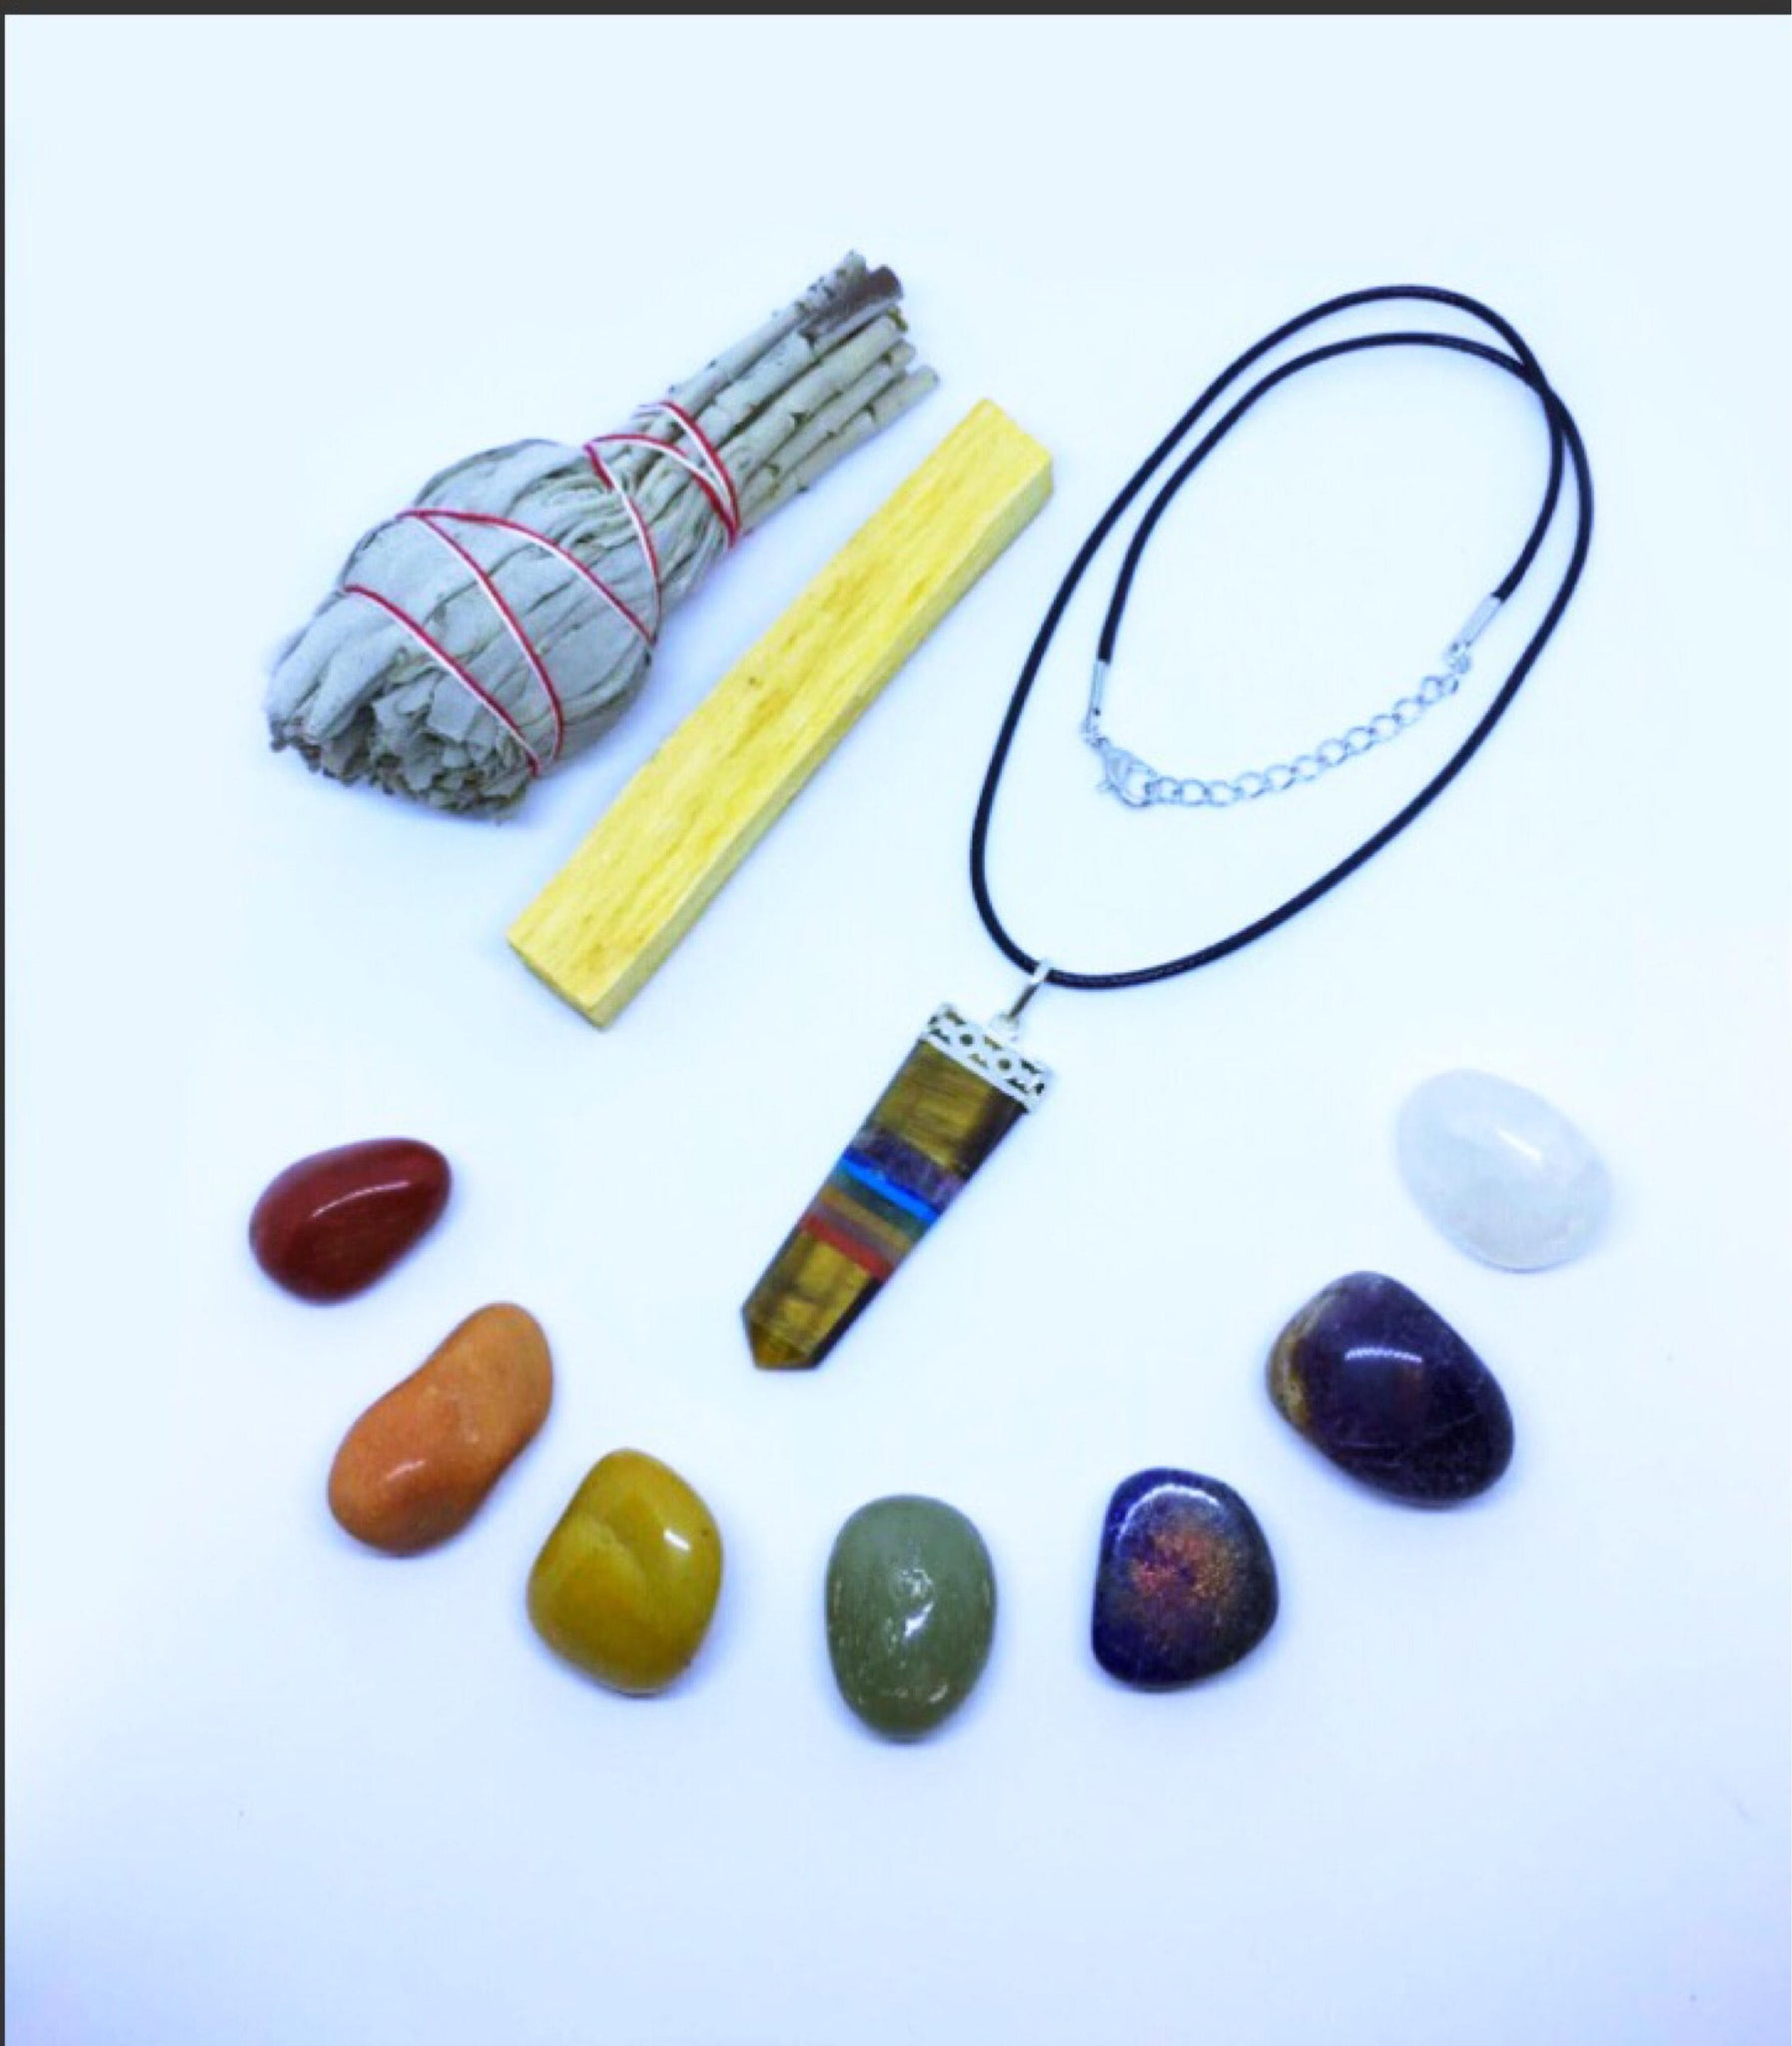 Chakra Crystal Healing Kit: Tigers Eye Chakra Necklace with Chakra stones, White CA sage, Palo Santo Wood, + Instructions - Reiki Infused